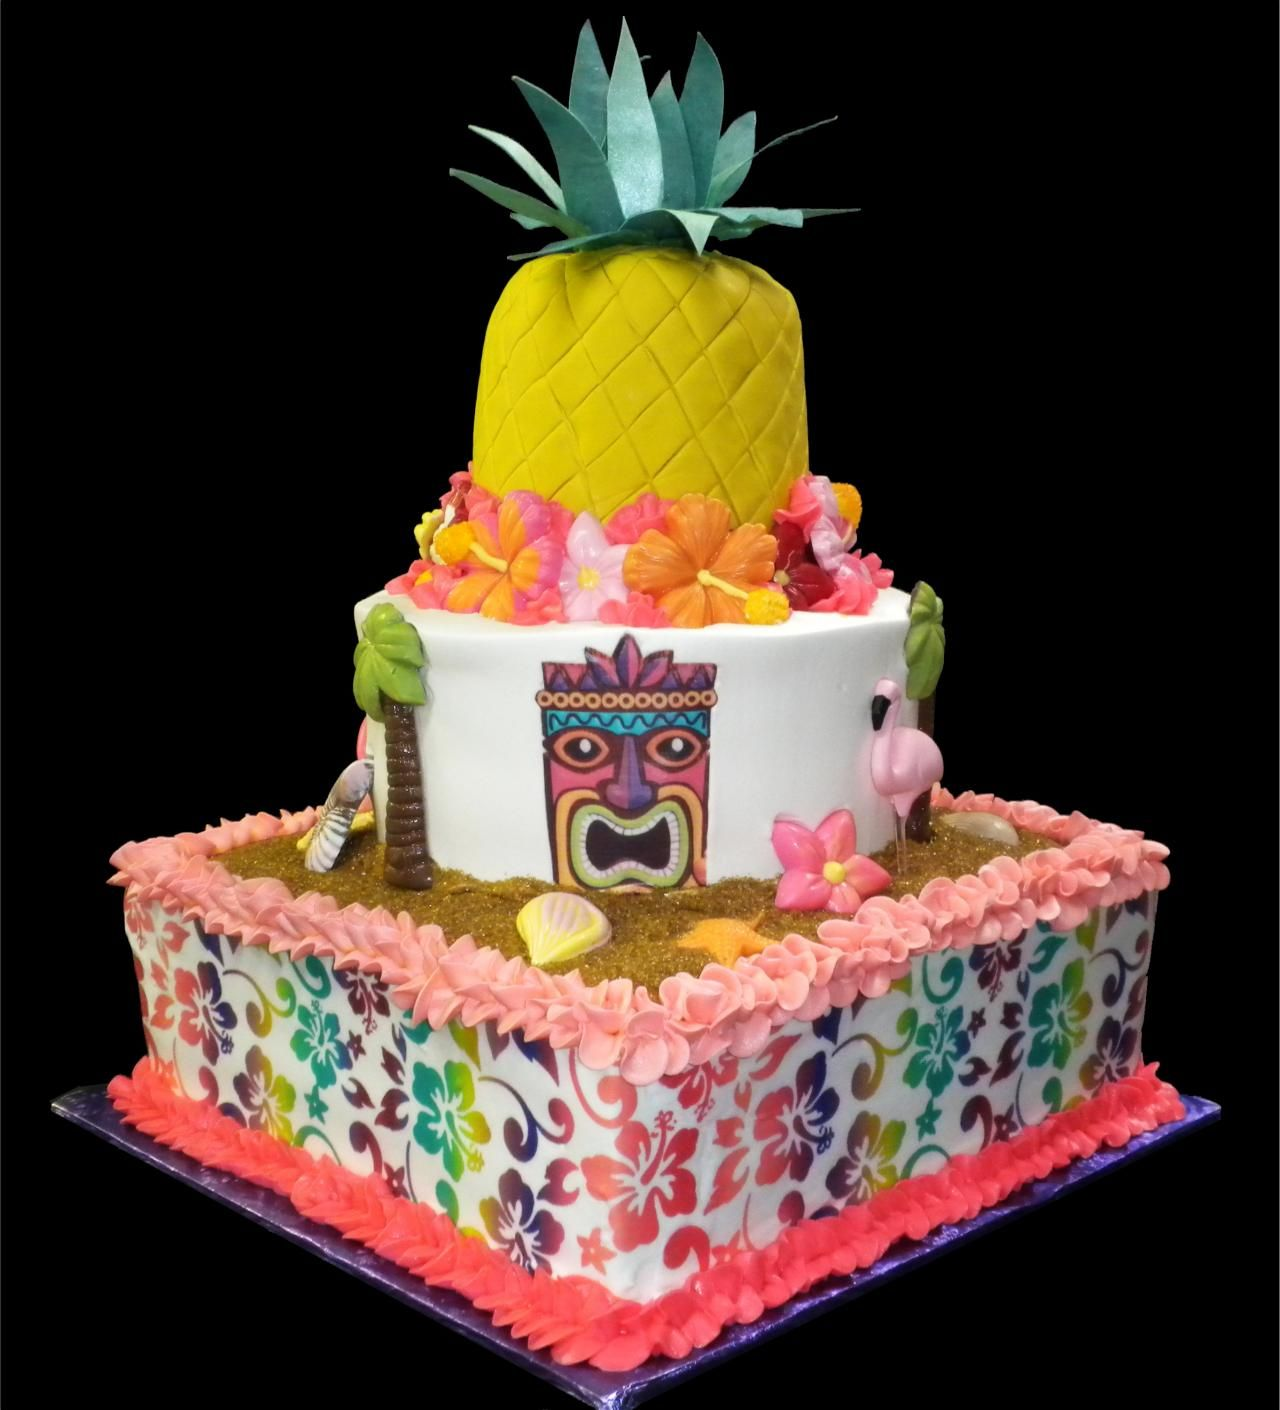 Hawaiian Birthday Cake White and yellow buttercream iced 3 tiers